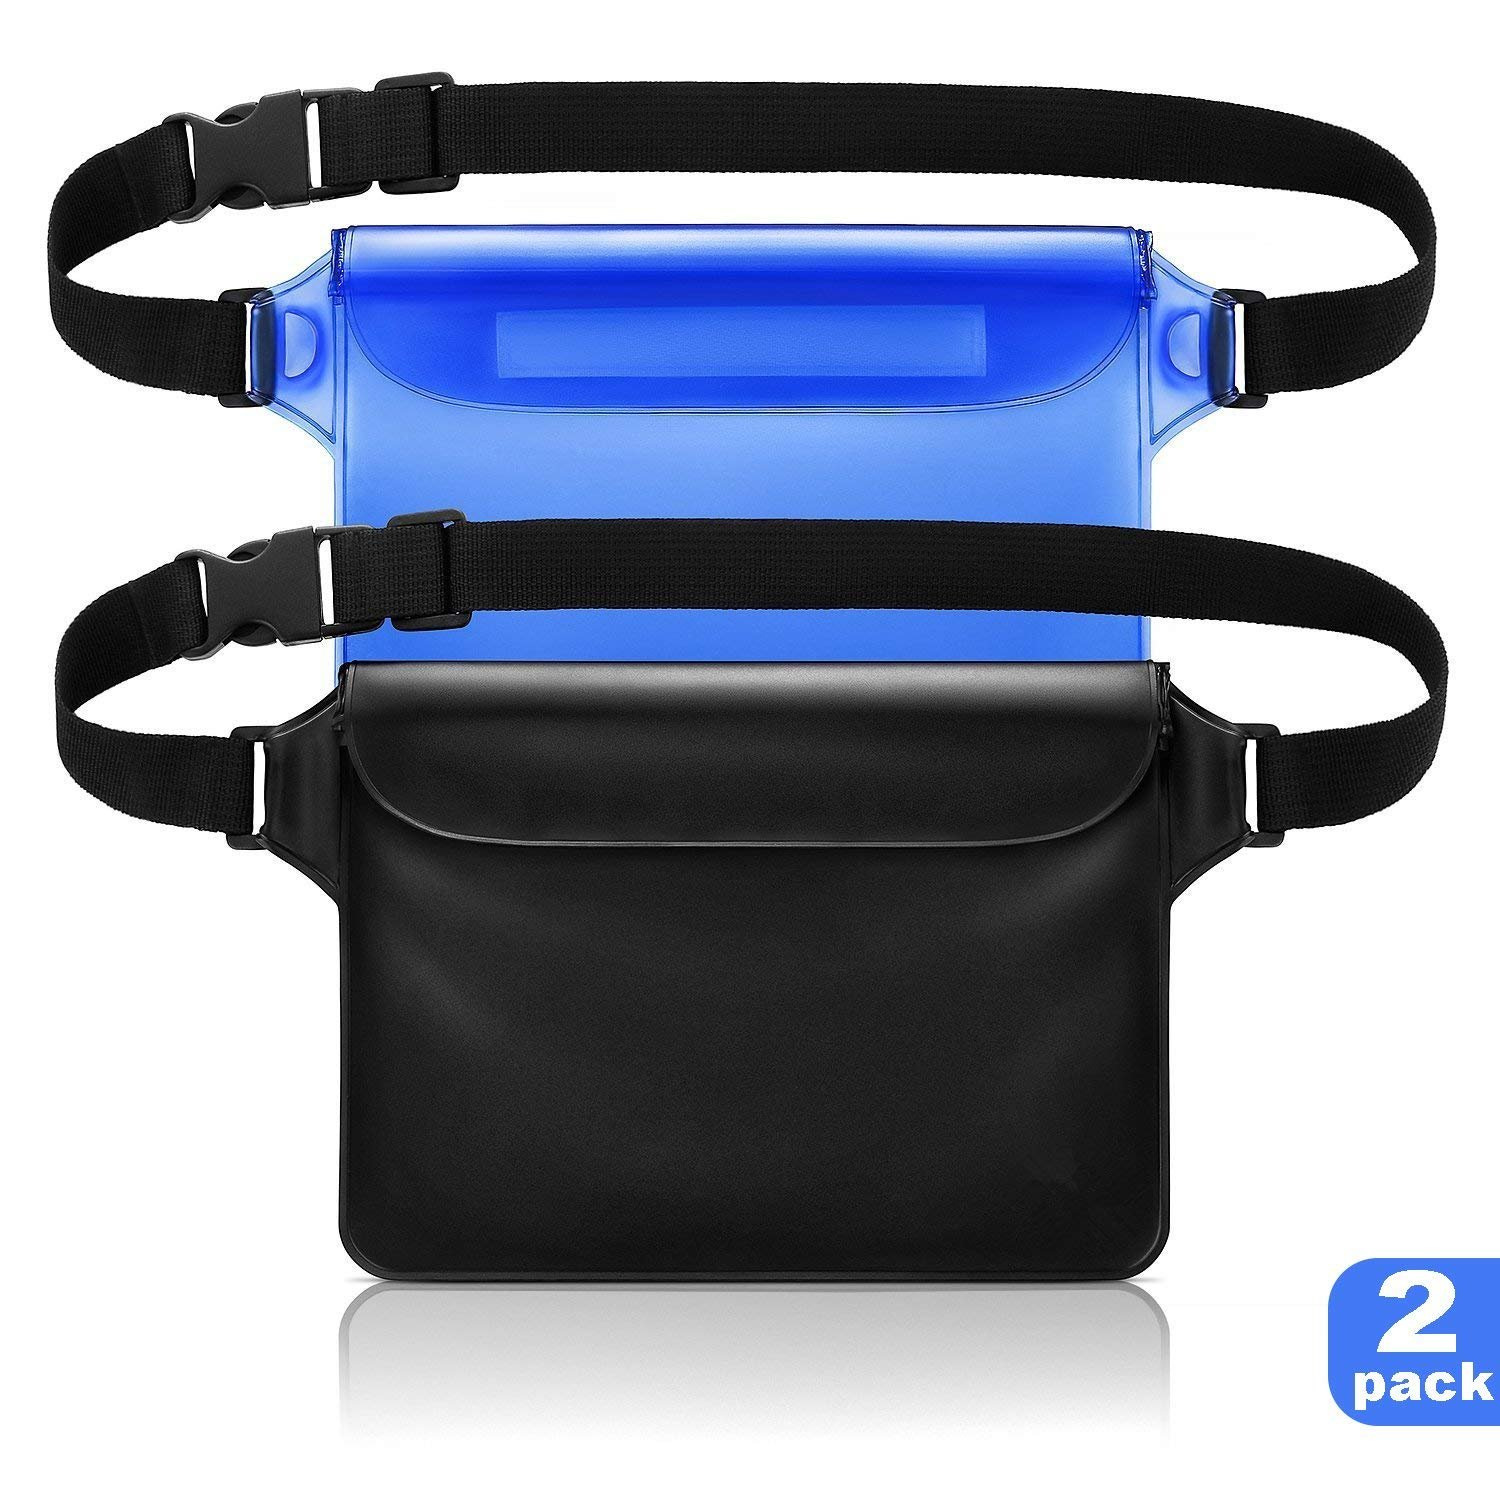 Cuzmak Waterproof Pouch with Waist Strap, 2 Pack the Most Durable # Super Lightweight Waterproof Phone Case/Wallet, Perfect for Kayaking Beach Pool Water Parks Boating Snorkeling Swimming and Fishing